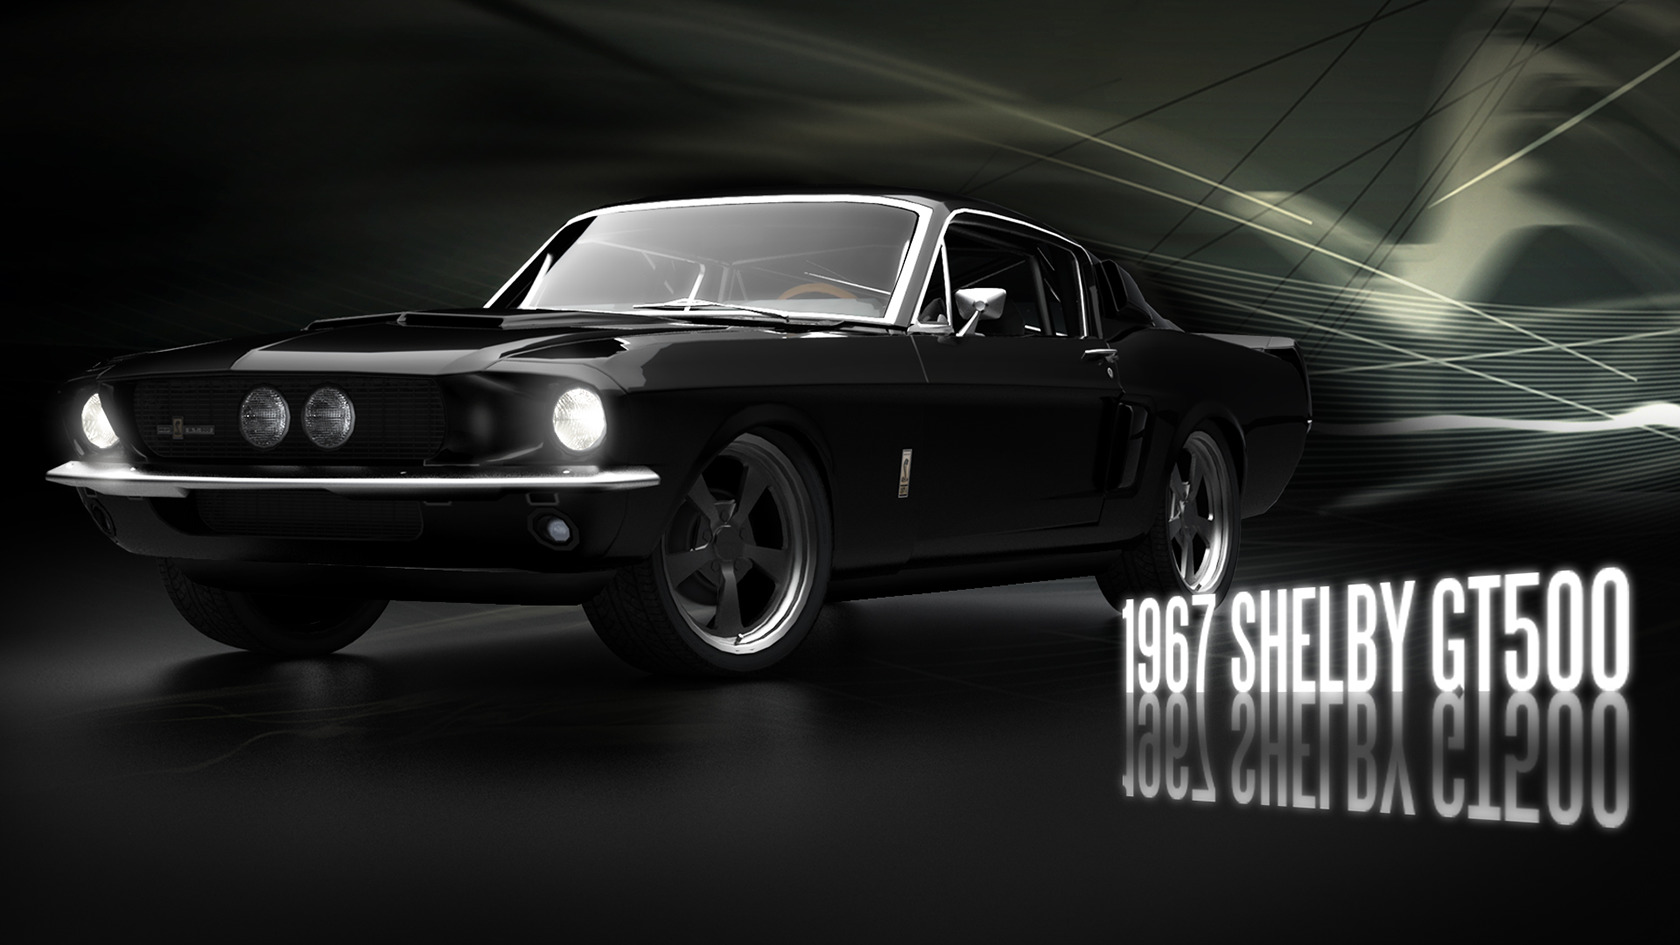 Ford mustang Shelby GT500 HD Wallpaper